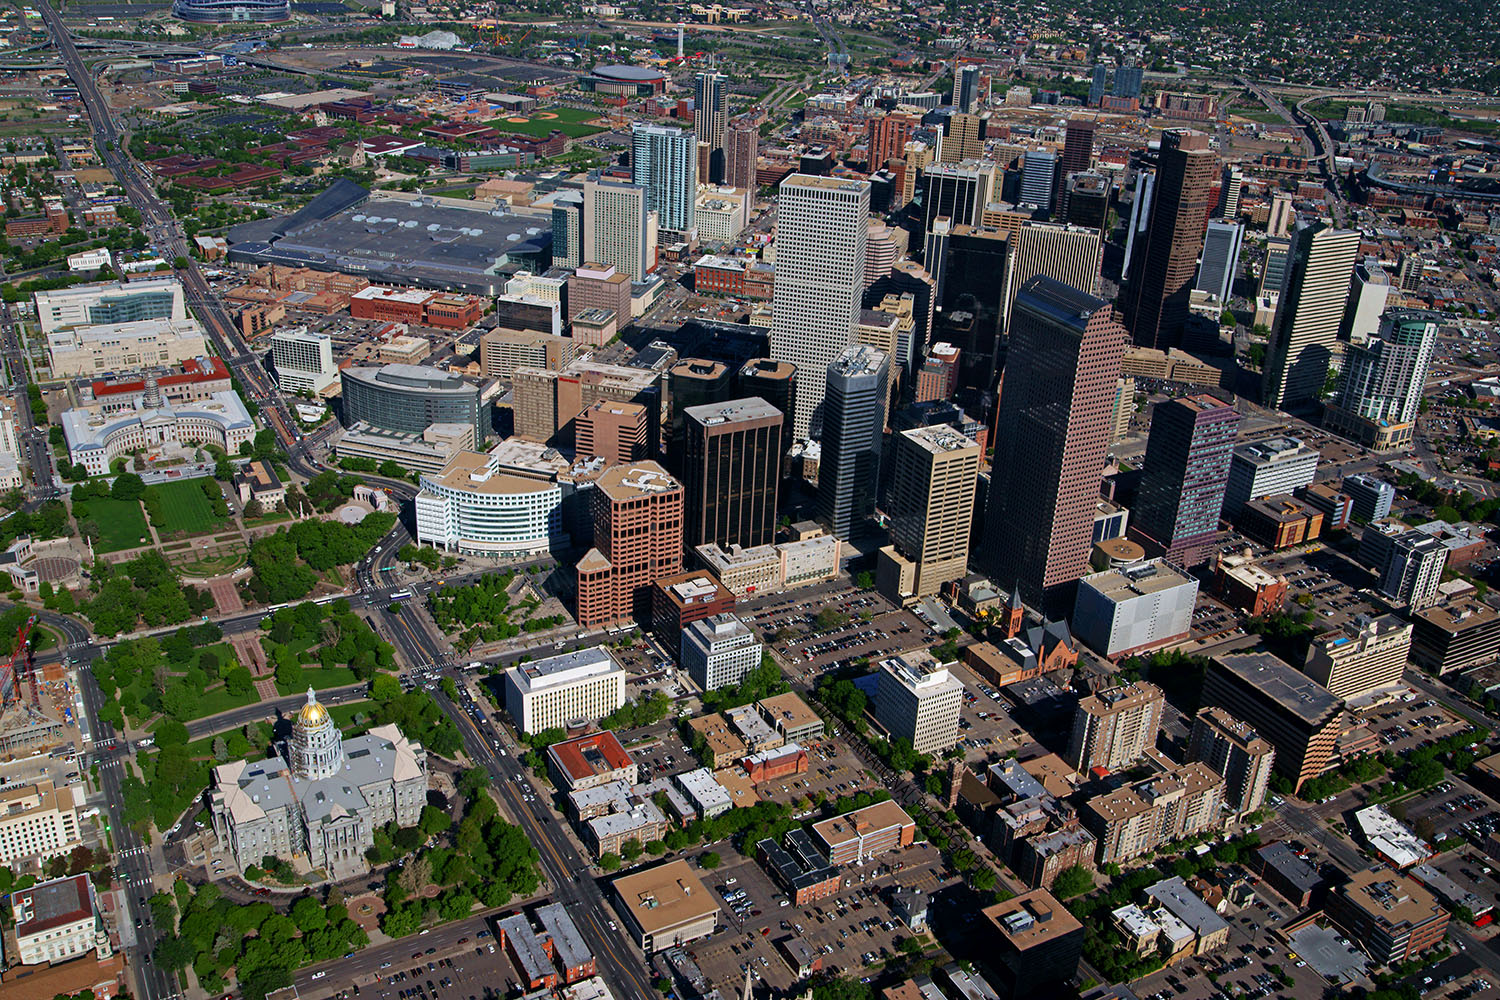 Aerial view of Denver, Colorado.